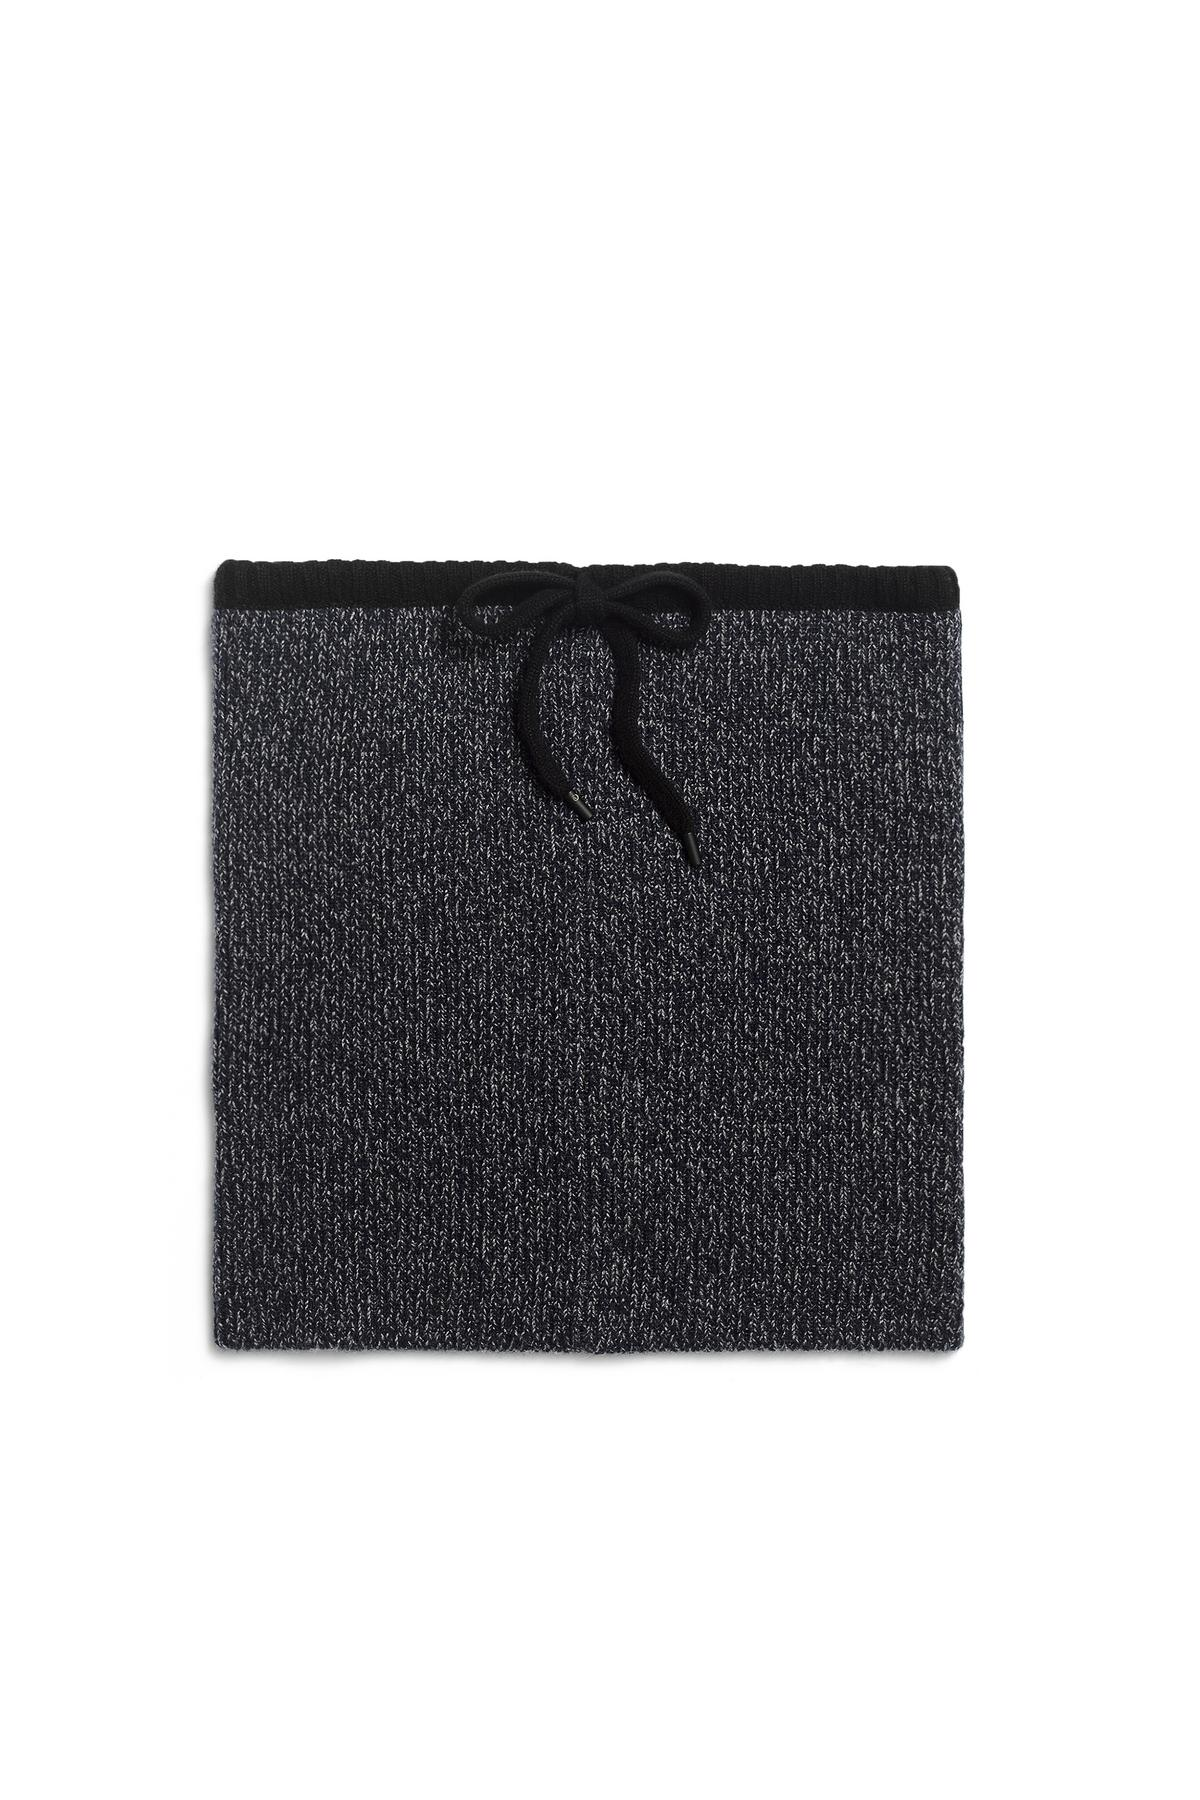 RAG & BONE FRANCESCA SNOOD